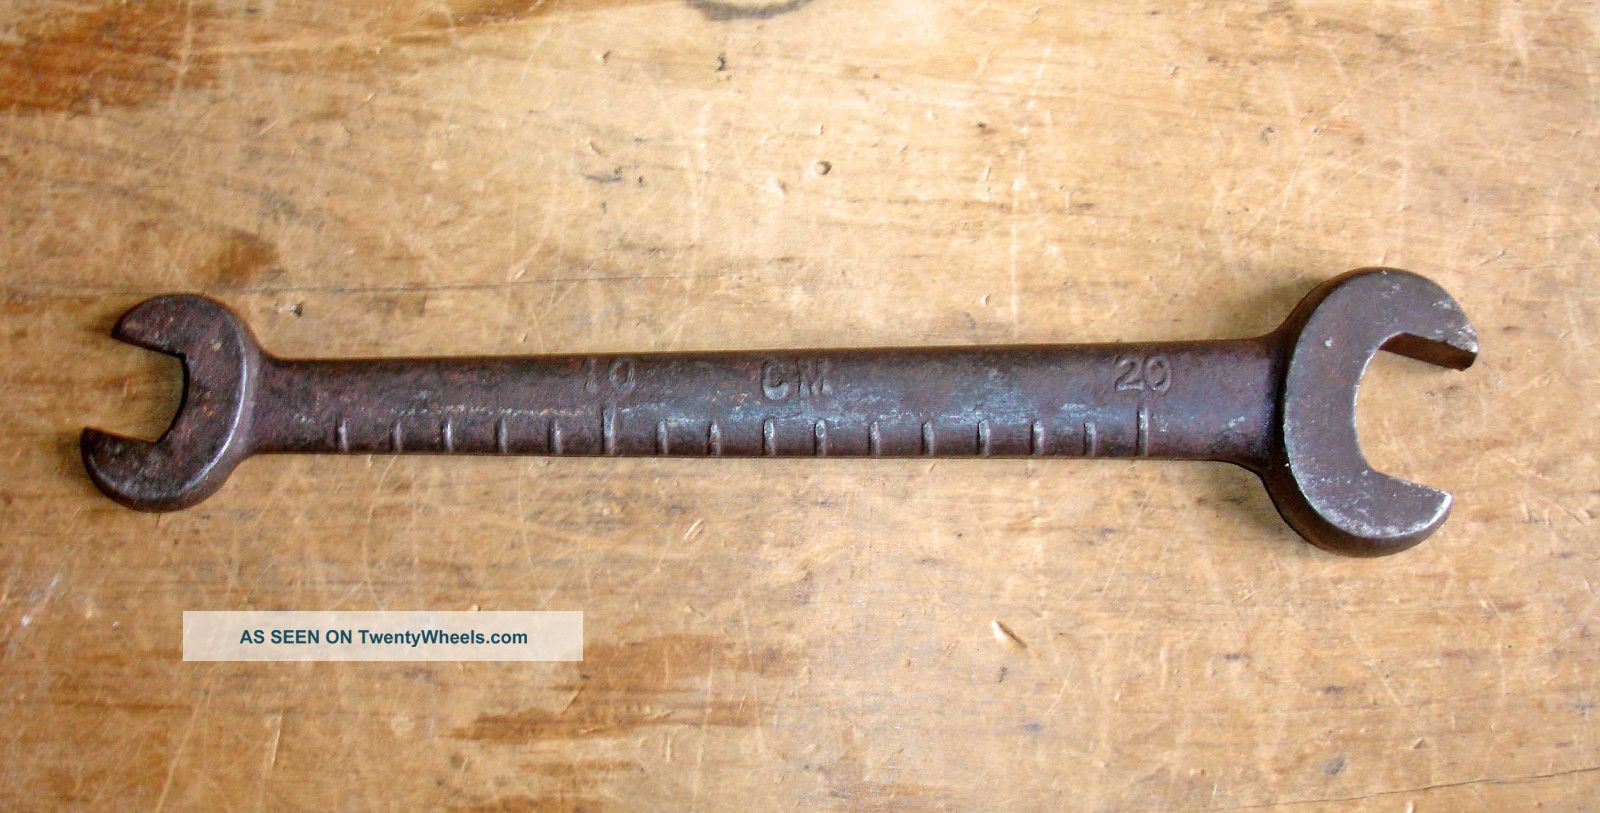 Vintage Grey Ferguson Tef - 20 Te20 Tractor Spanner Wrench En18 Uncategorized photo